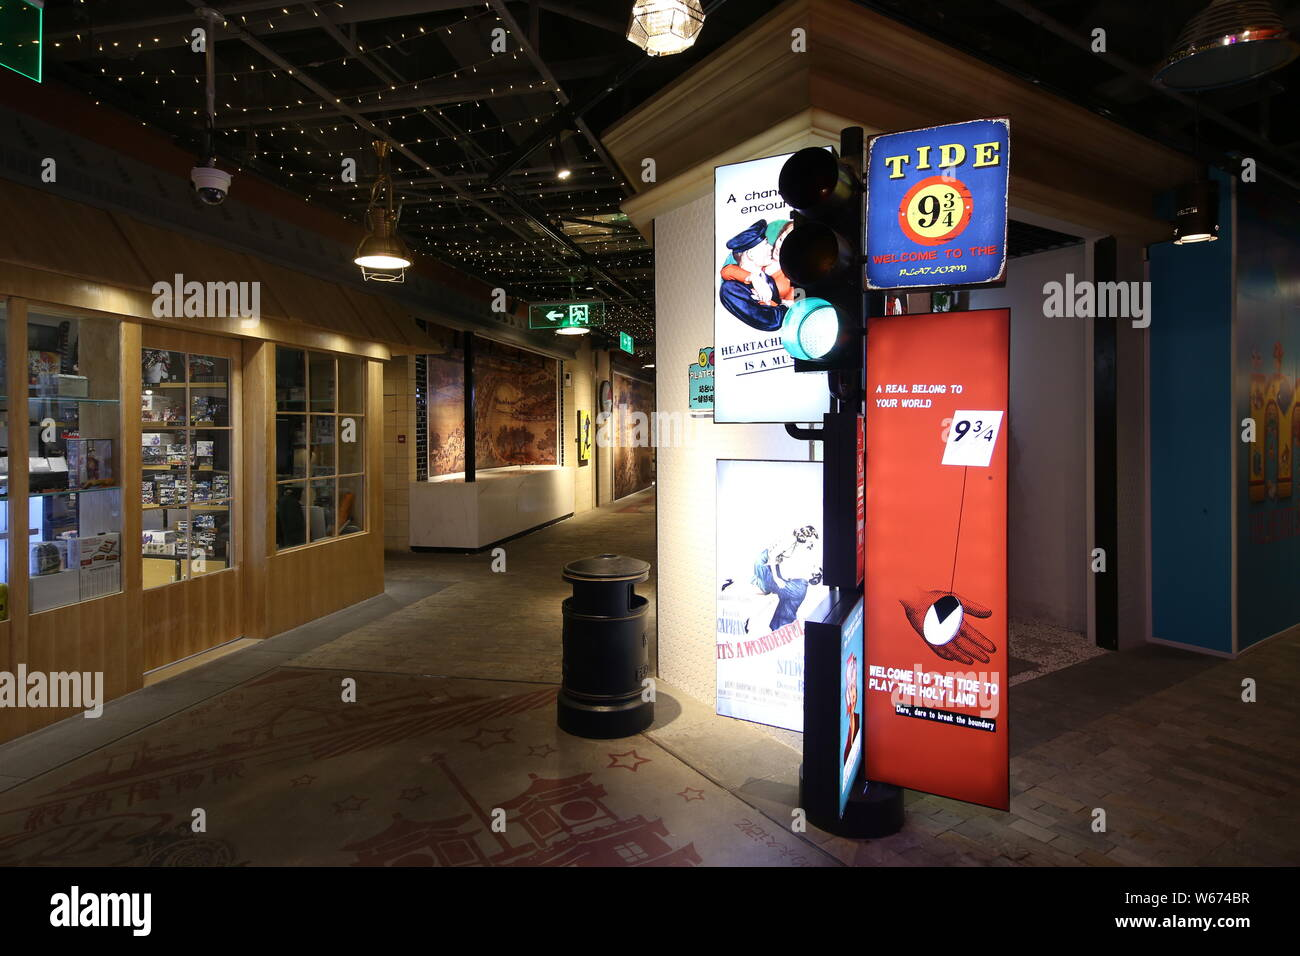 Interior view of a commercial block on the theme of the